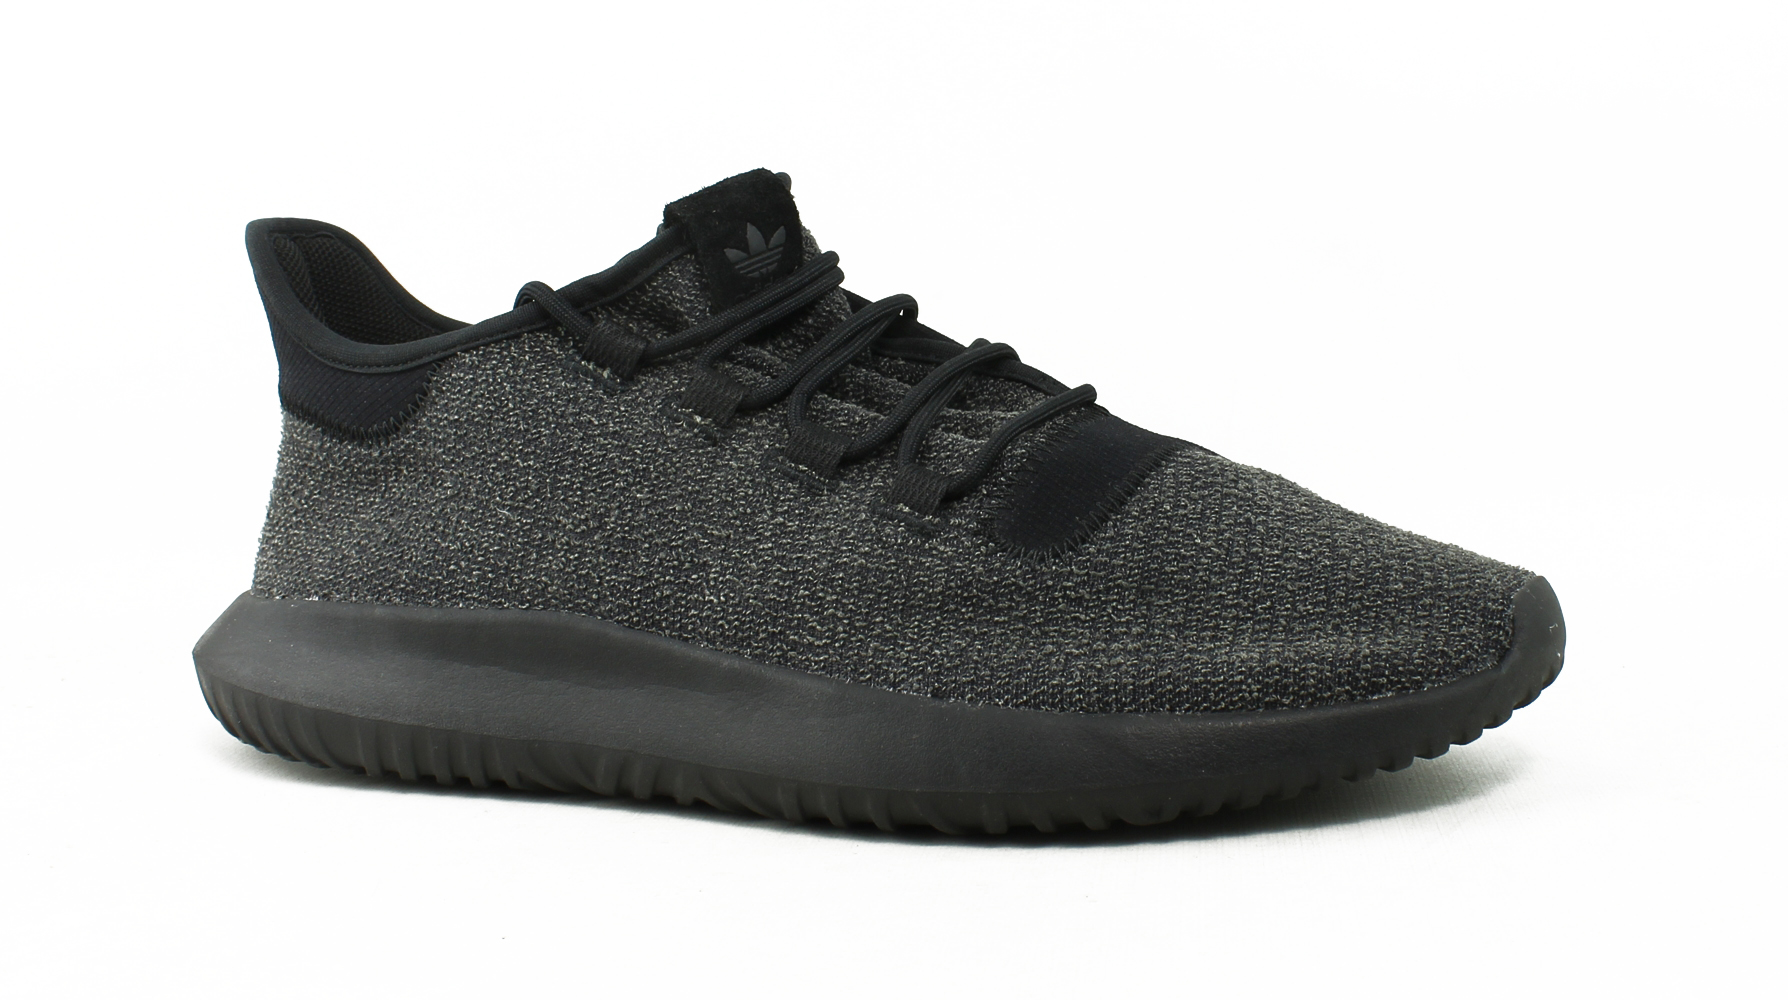 adidas adidas adidas    noir des baskets taille 10.5 (363229) | Insolite